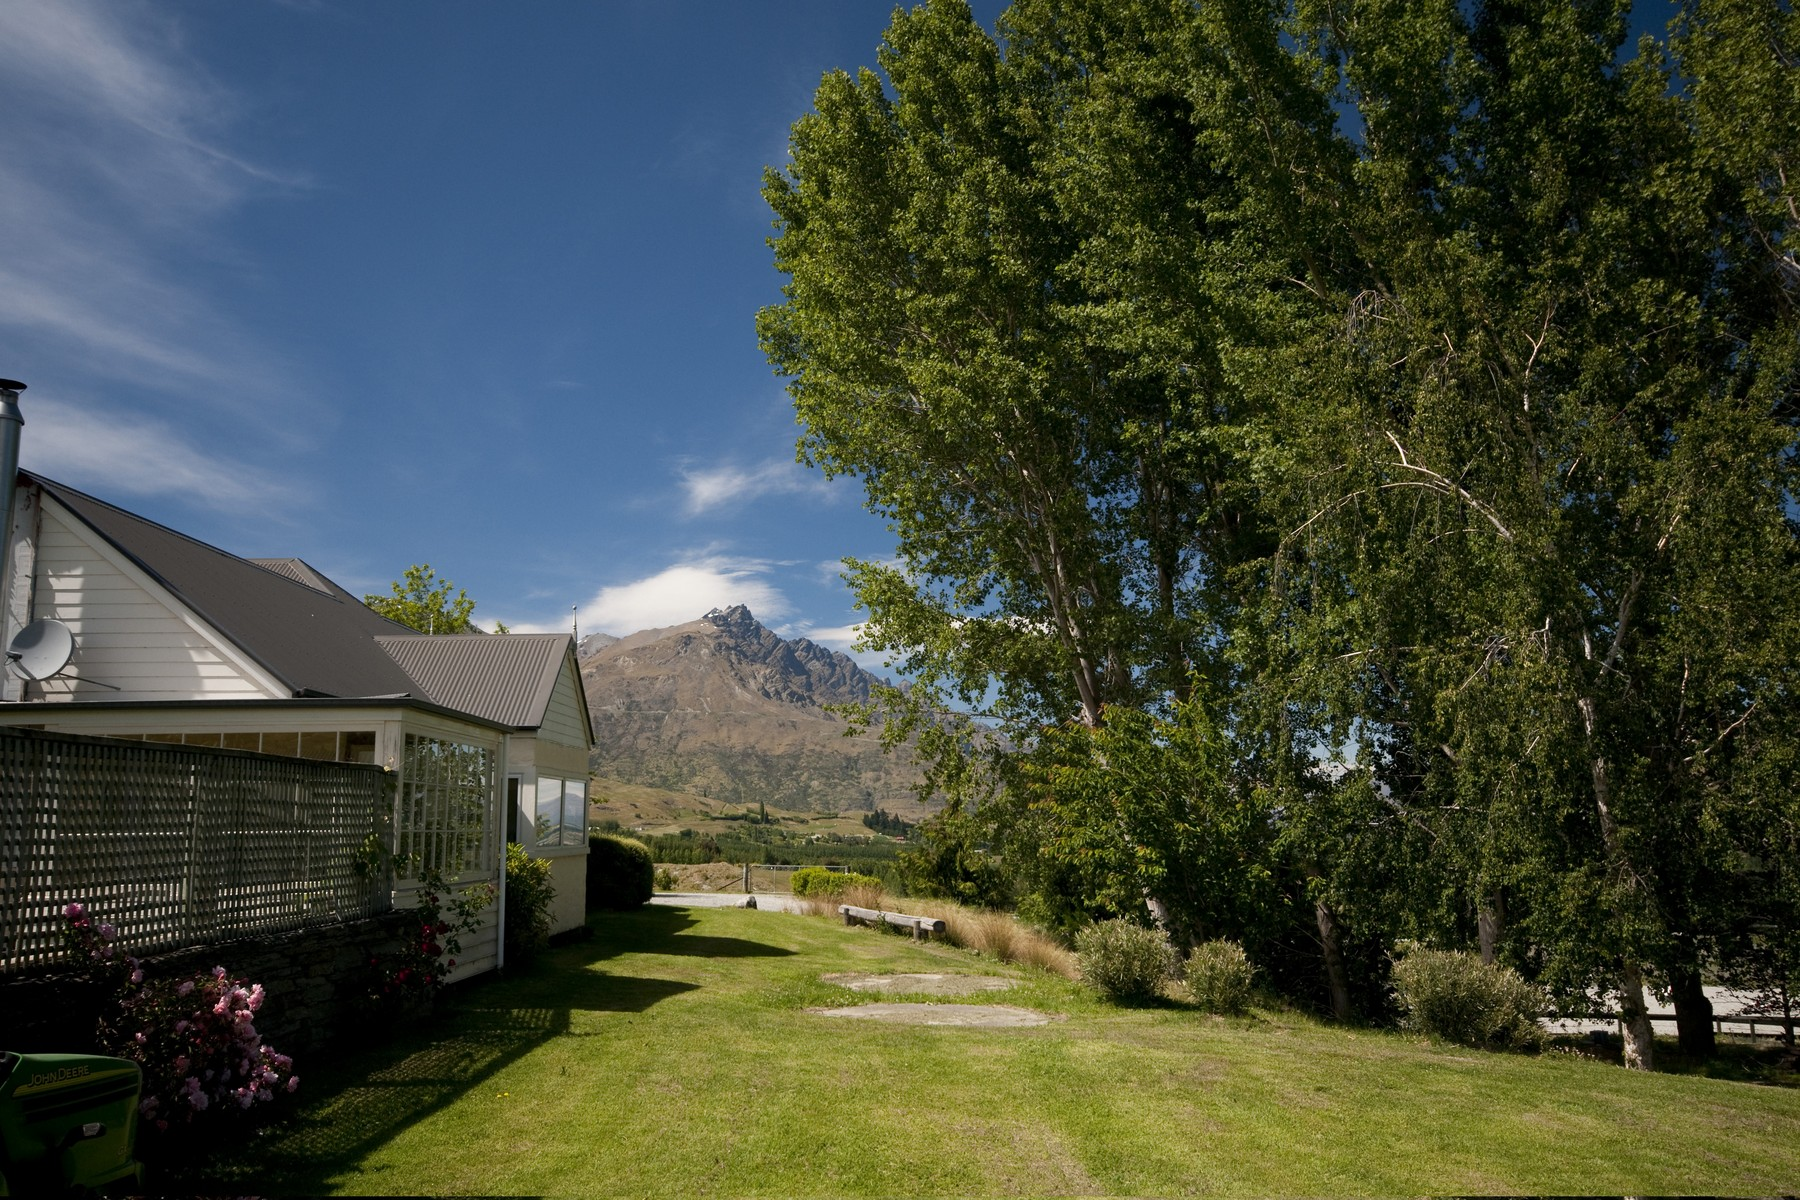 Villa per Vendita alle ore Speargrass Farm, 125 Hunter Road 125 Hunter Road Speargrass Flat Queenstown, Southern Lakes, 9371 Nuova Zelanda